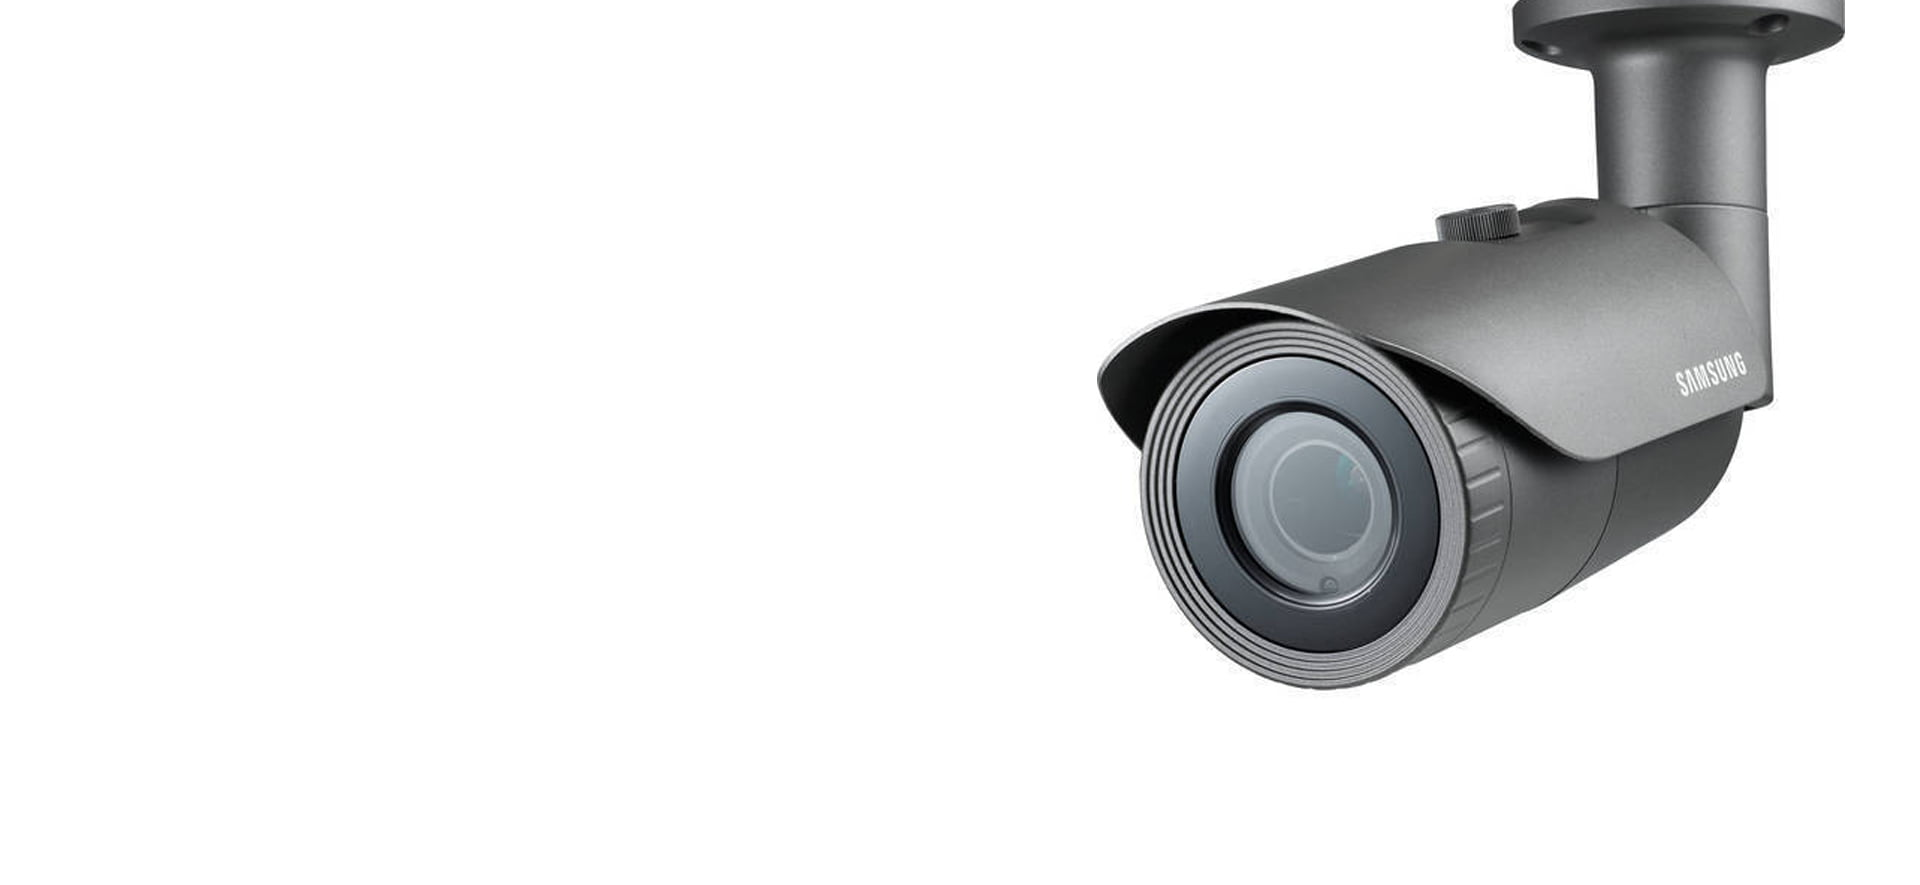 samsung camera security